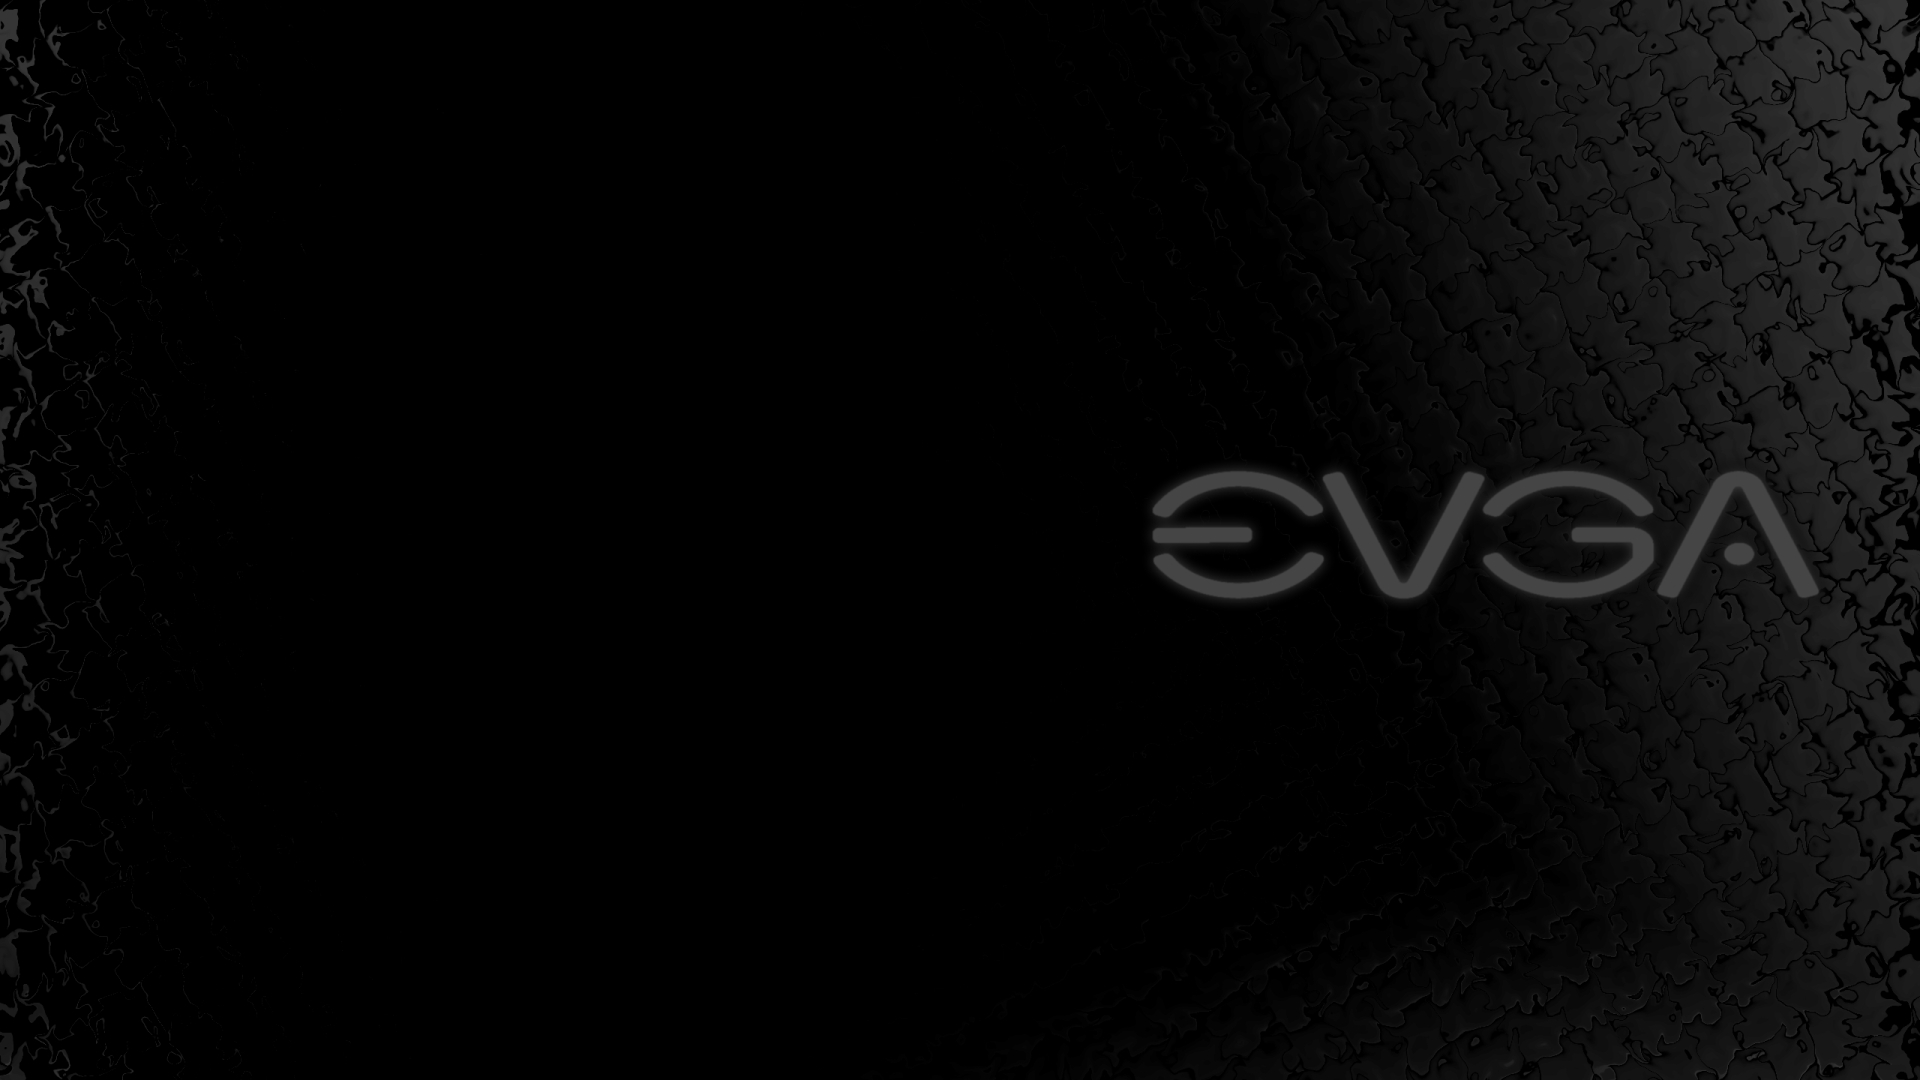 wallpaper.wiki-Photos-Download-Evga-HD-PIC-WPB006024